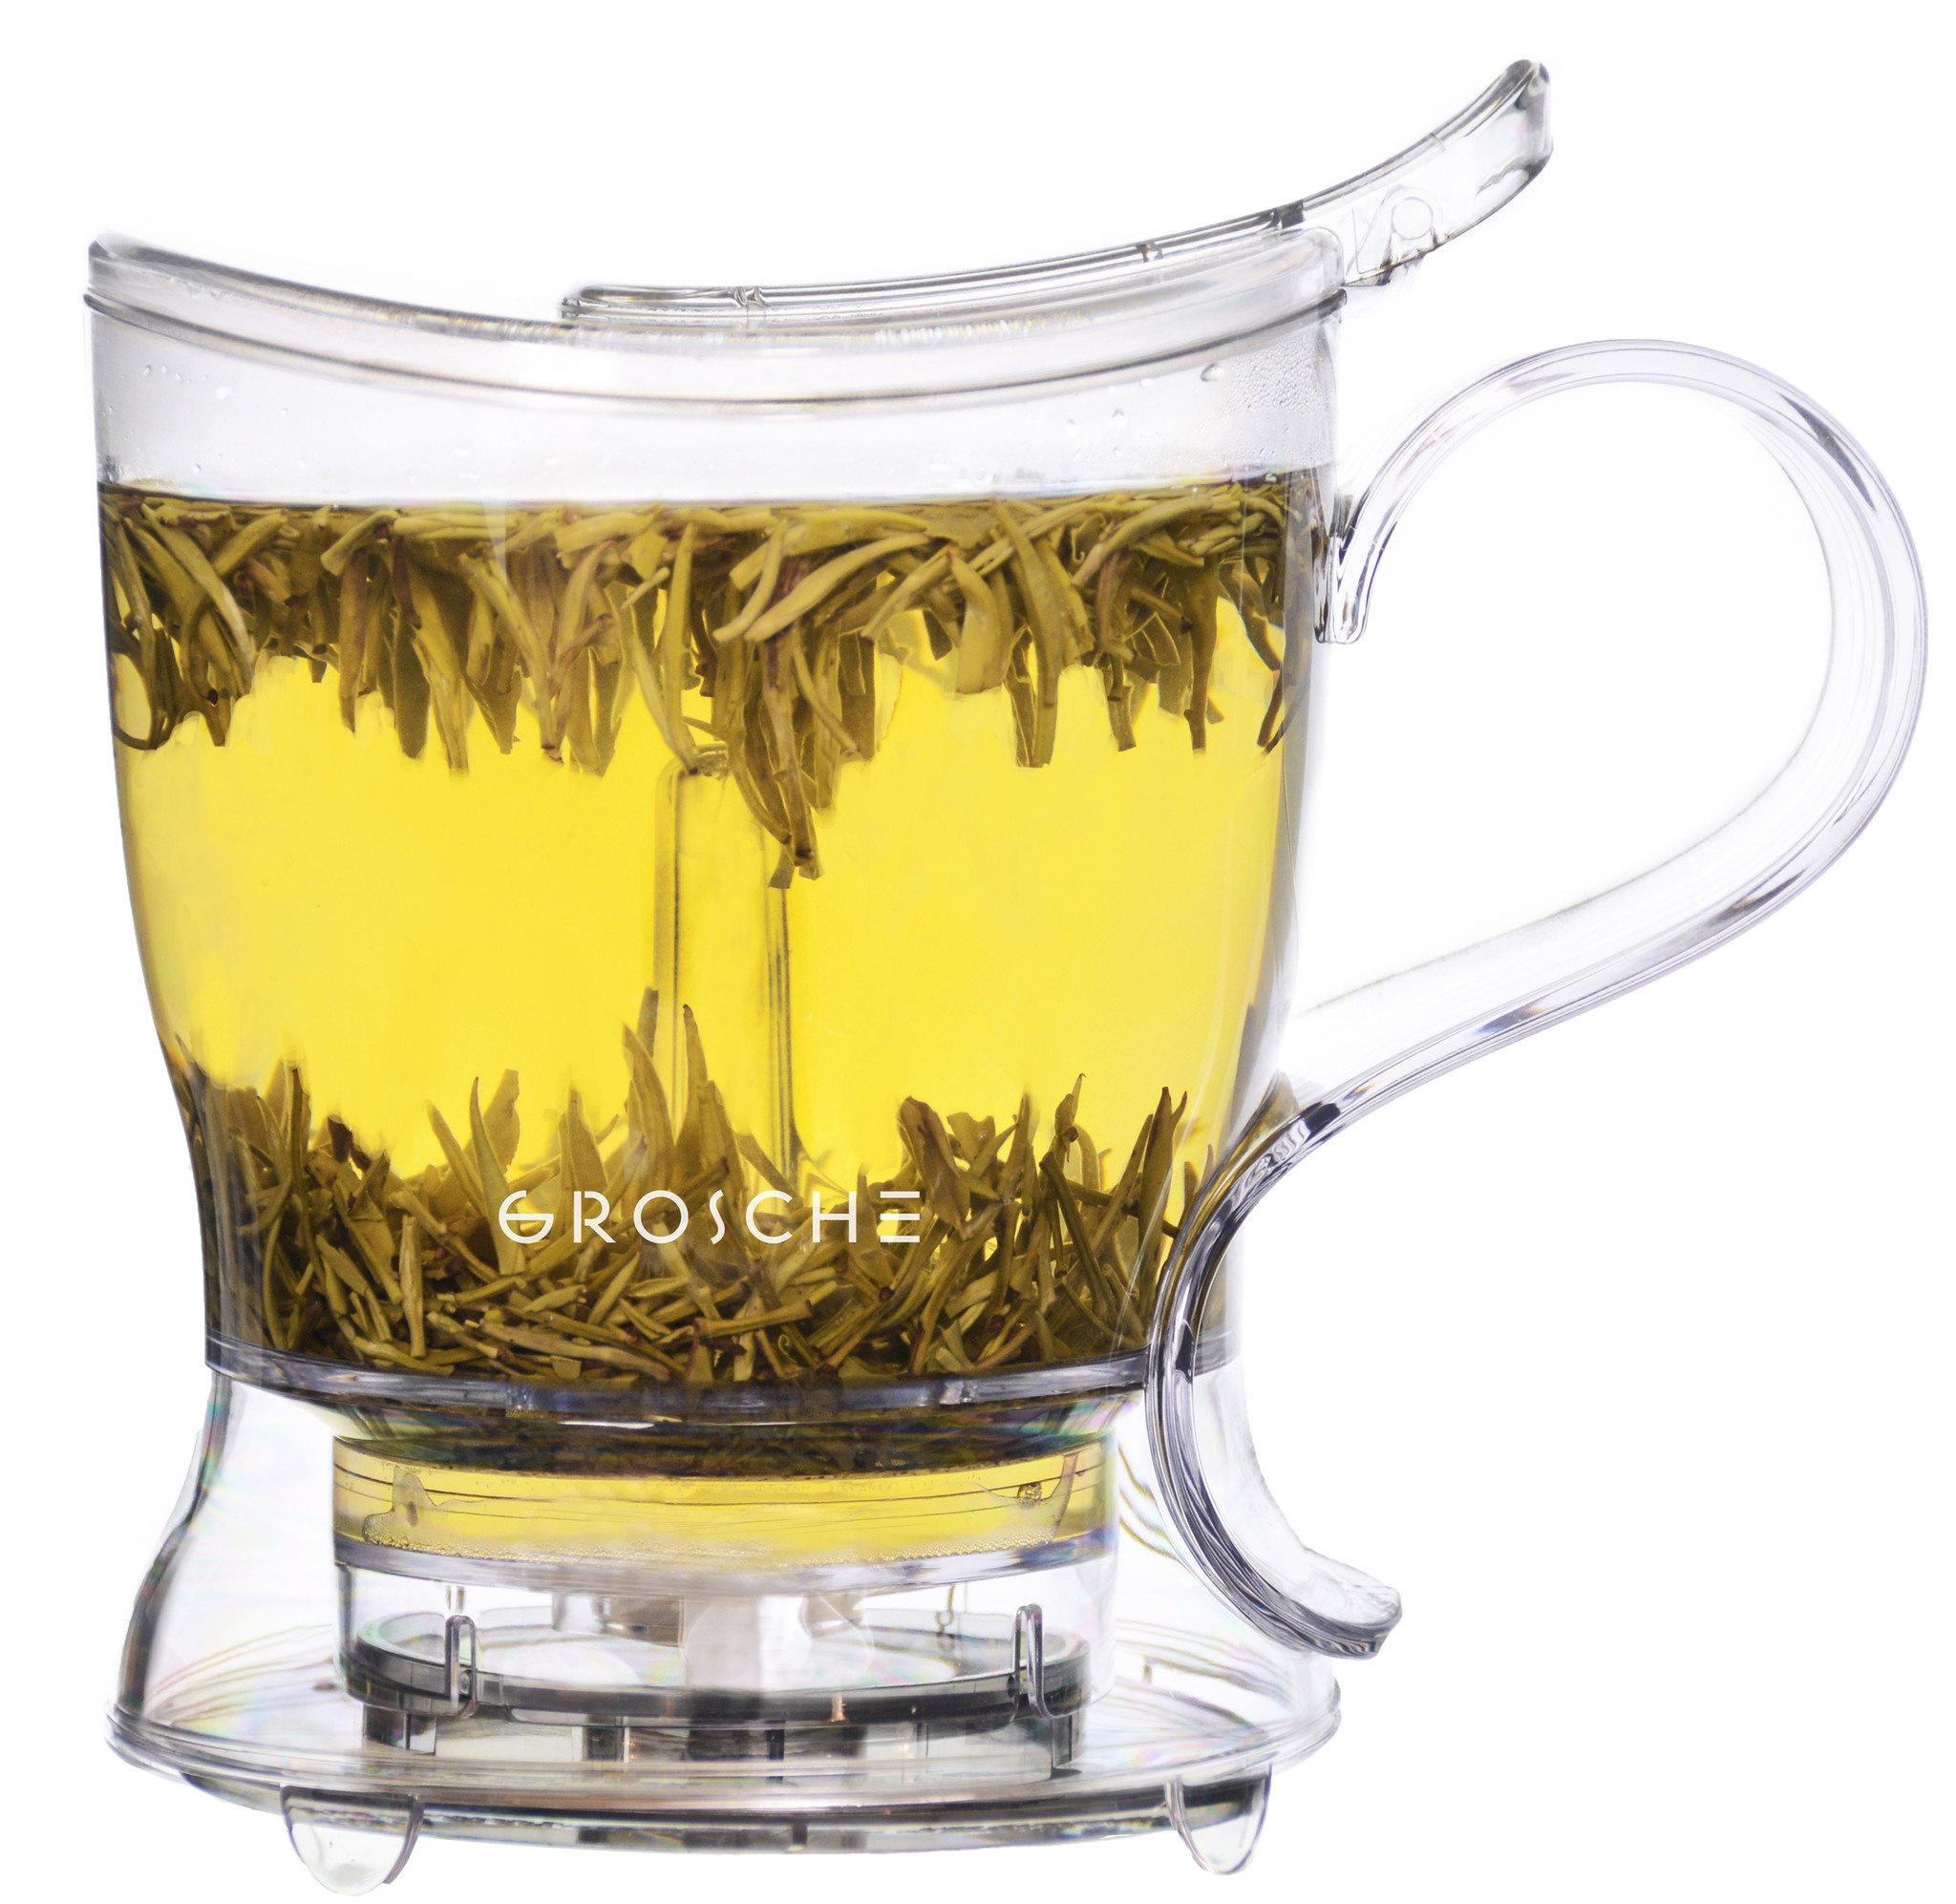 GROSCHE Aberdeen PERFECT TEA MAKER set with coaster, Tea Steeper, Teapot, Tea Infuser, 17.7 oz. 525 ml, EASY CLEAN Steeper, BPA-Free, NO DRIPS!